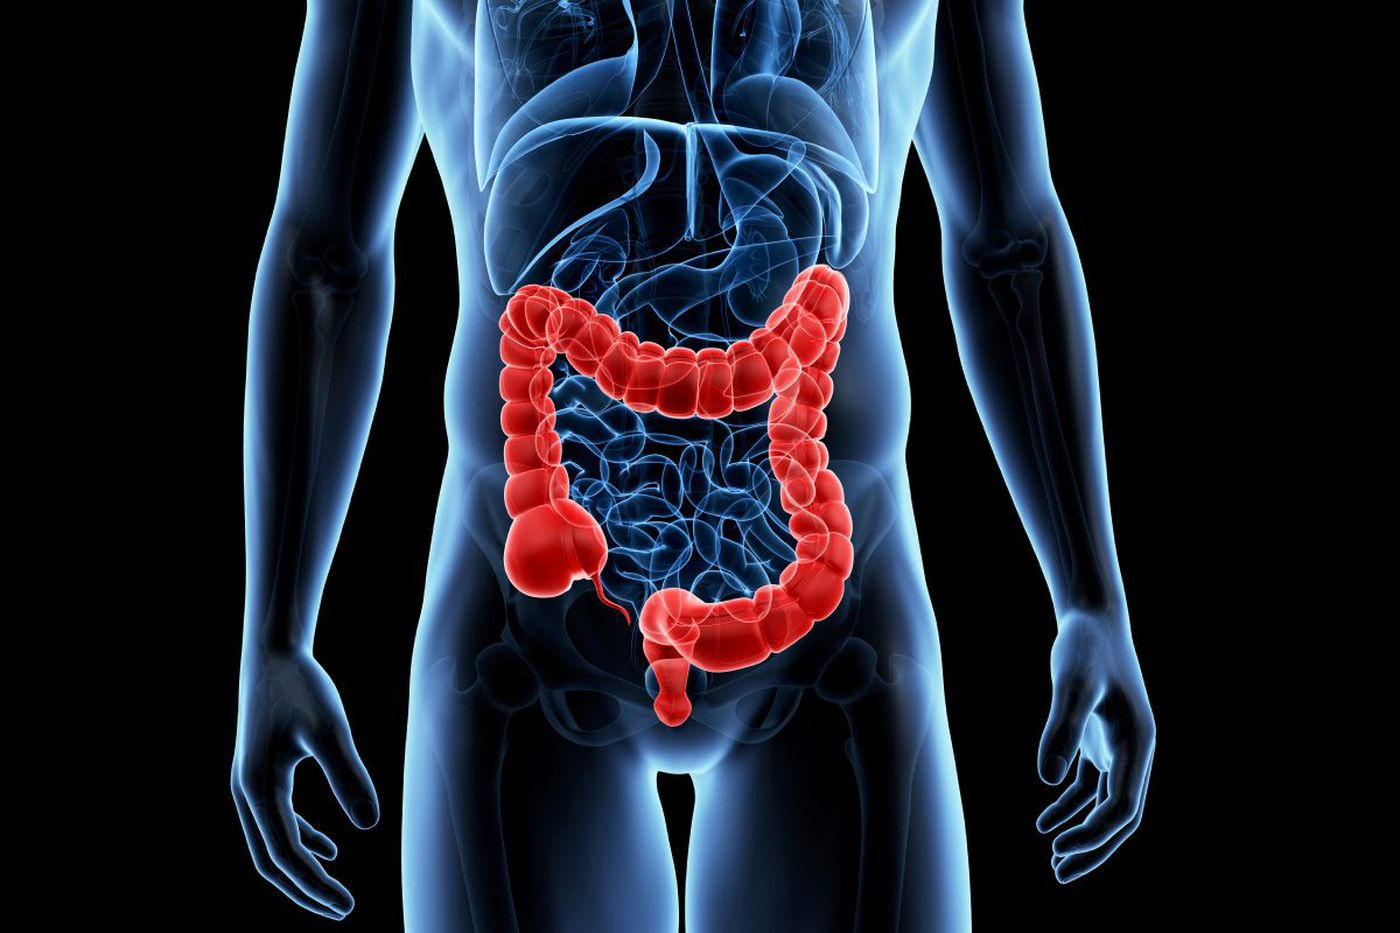 Q&A: Options for colon cancer screening